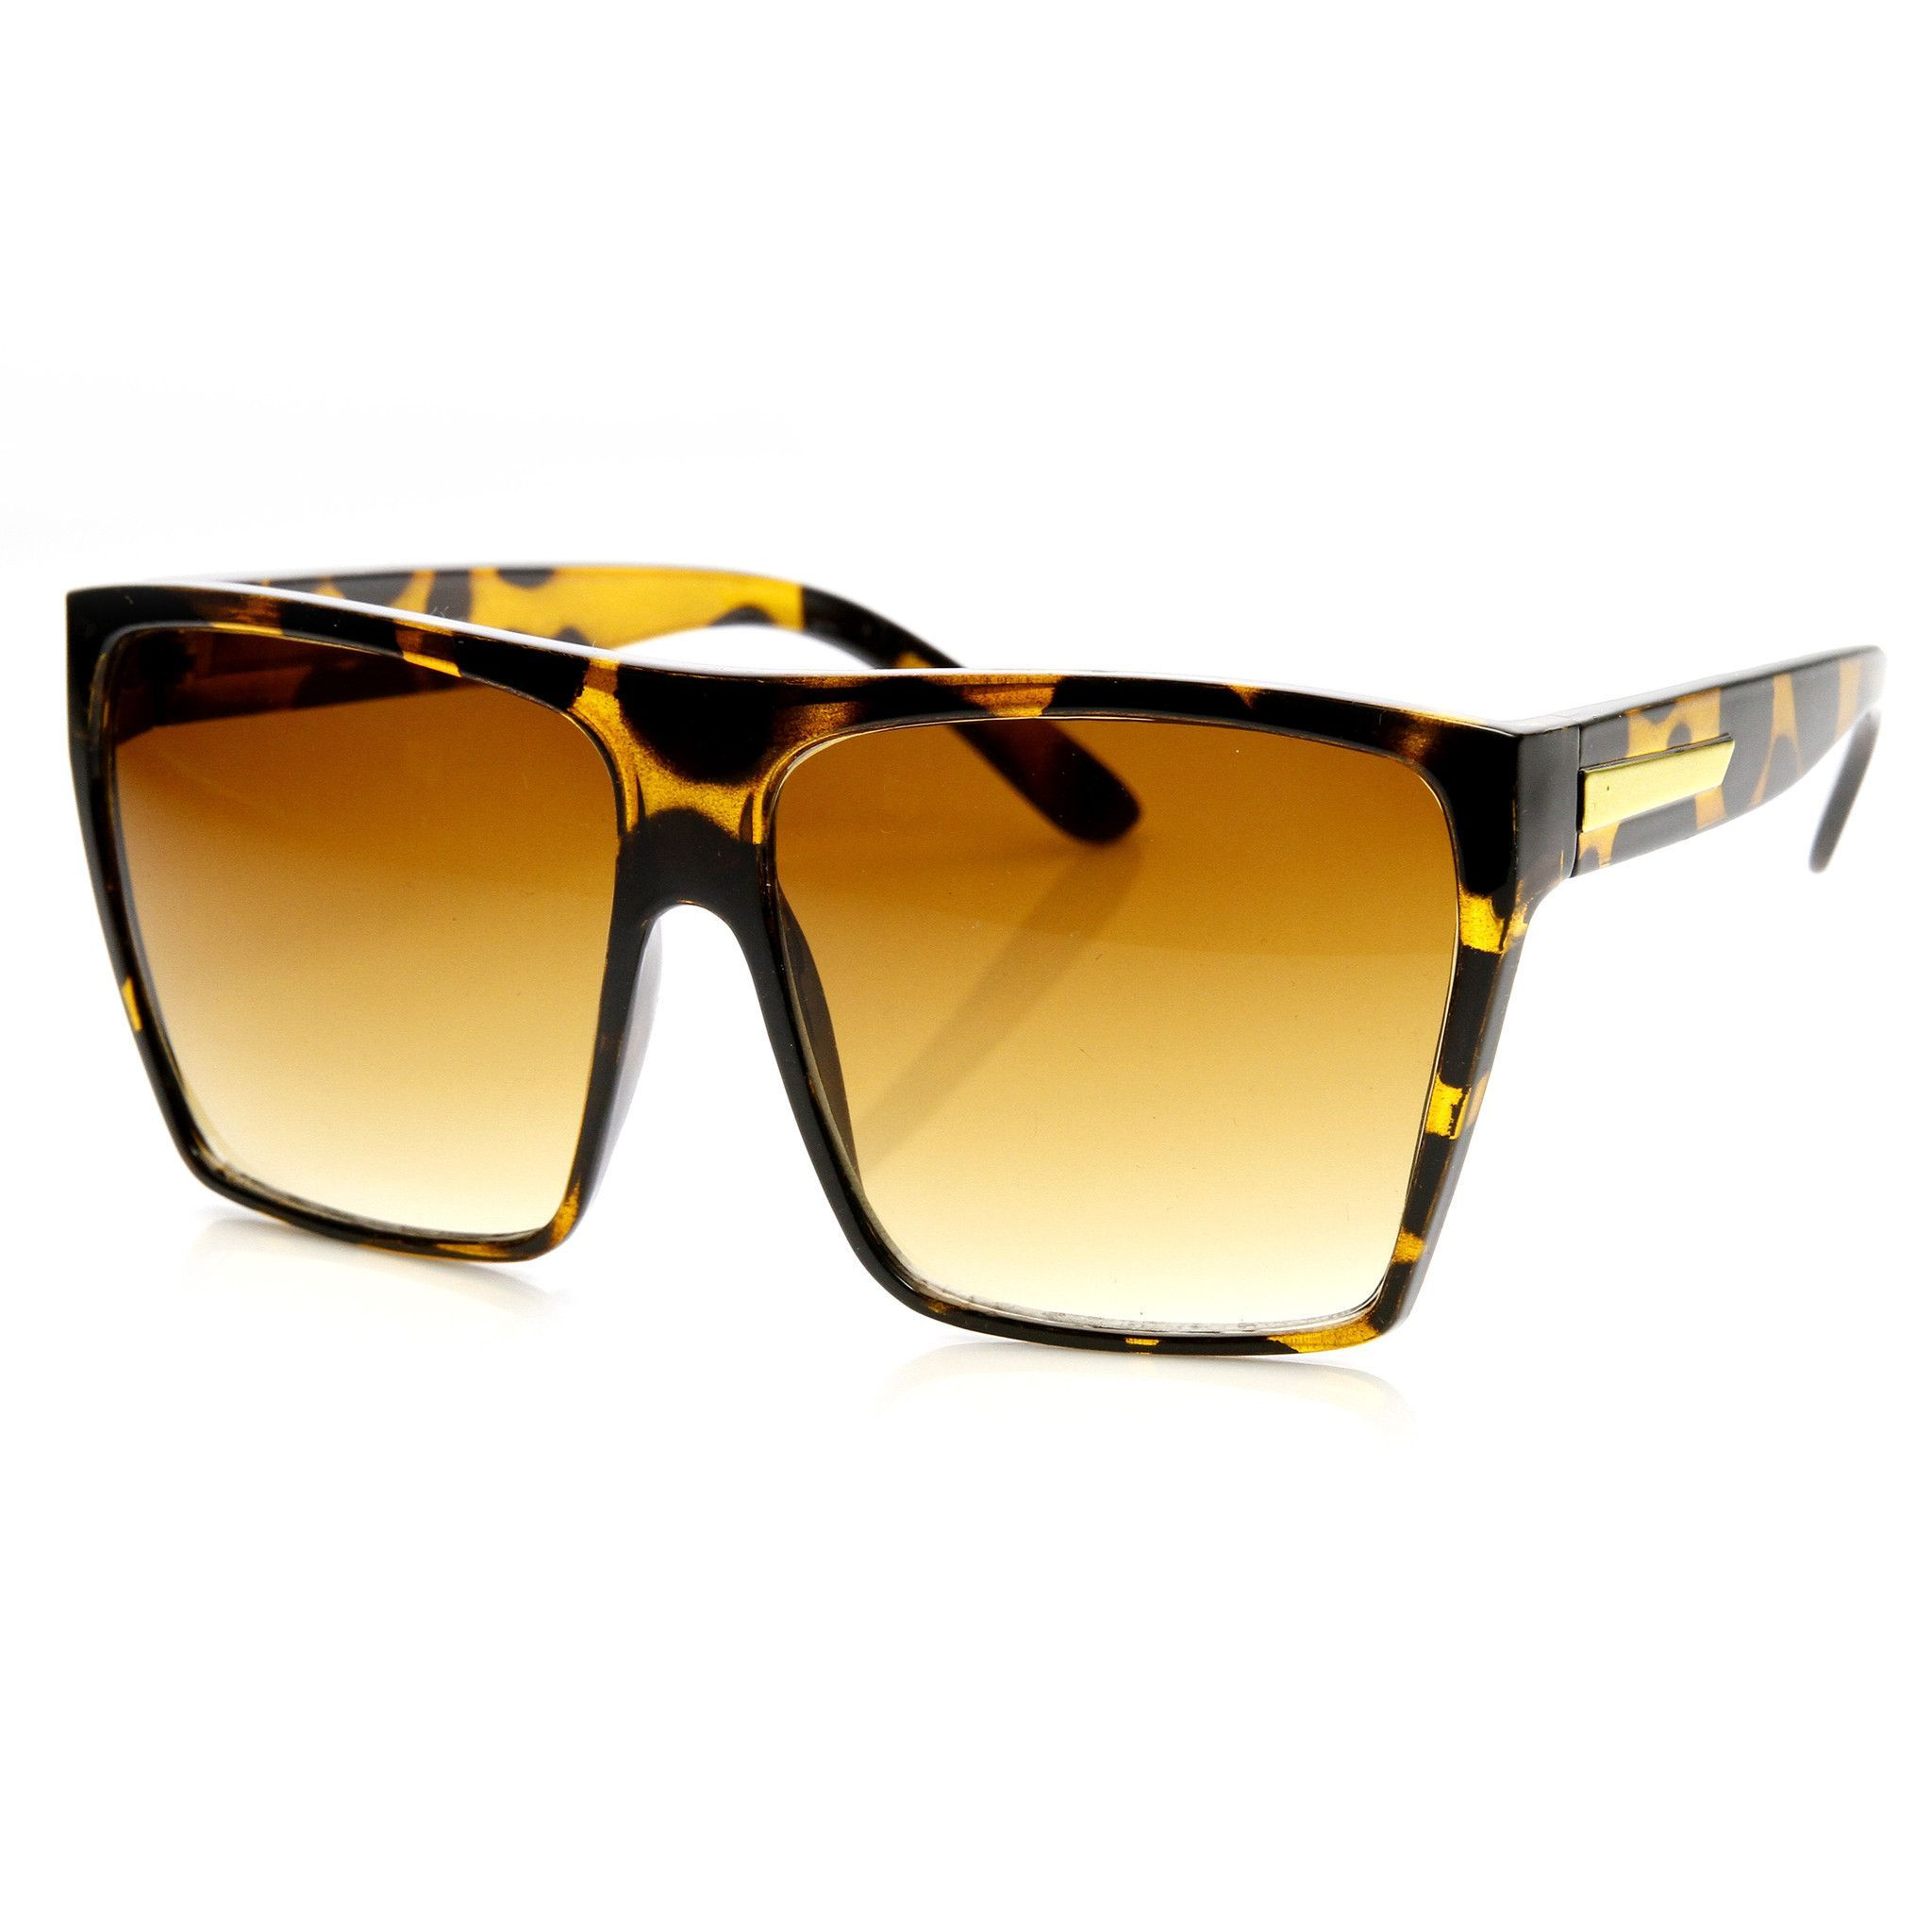 Large Oversized Squared Sunglasses with Temple Accents